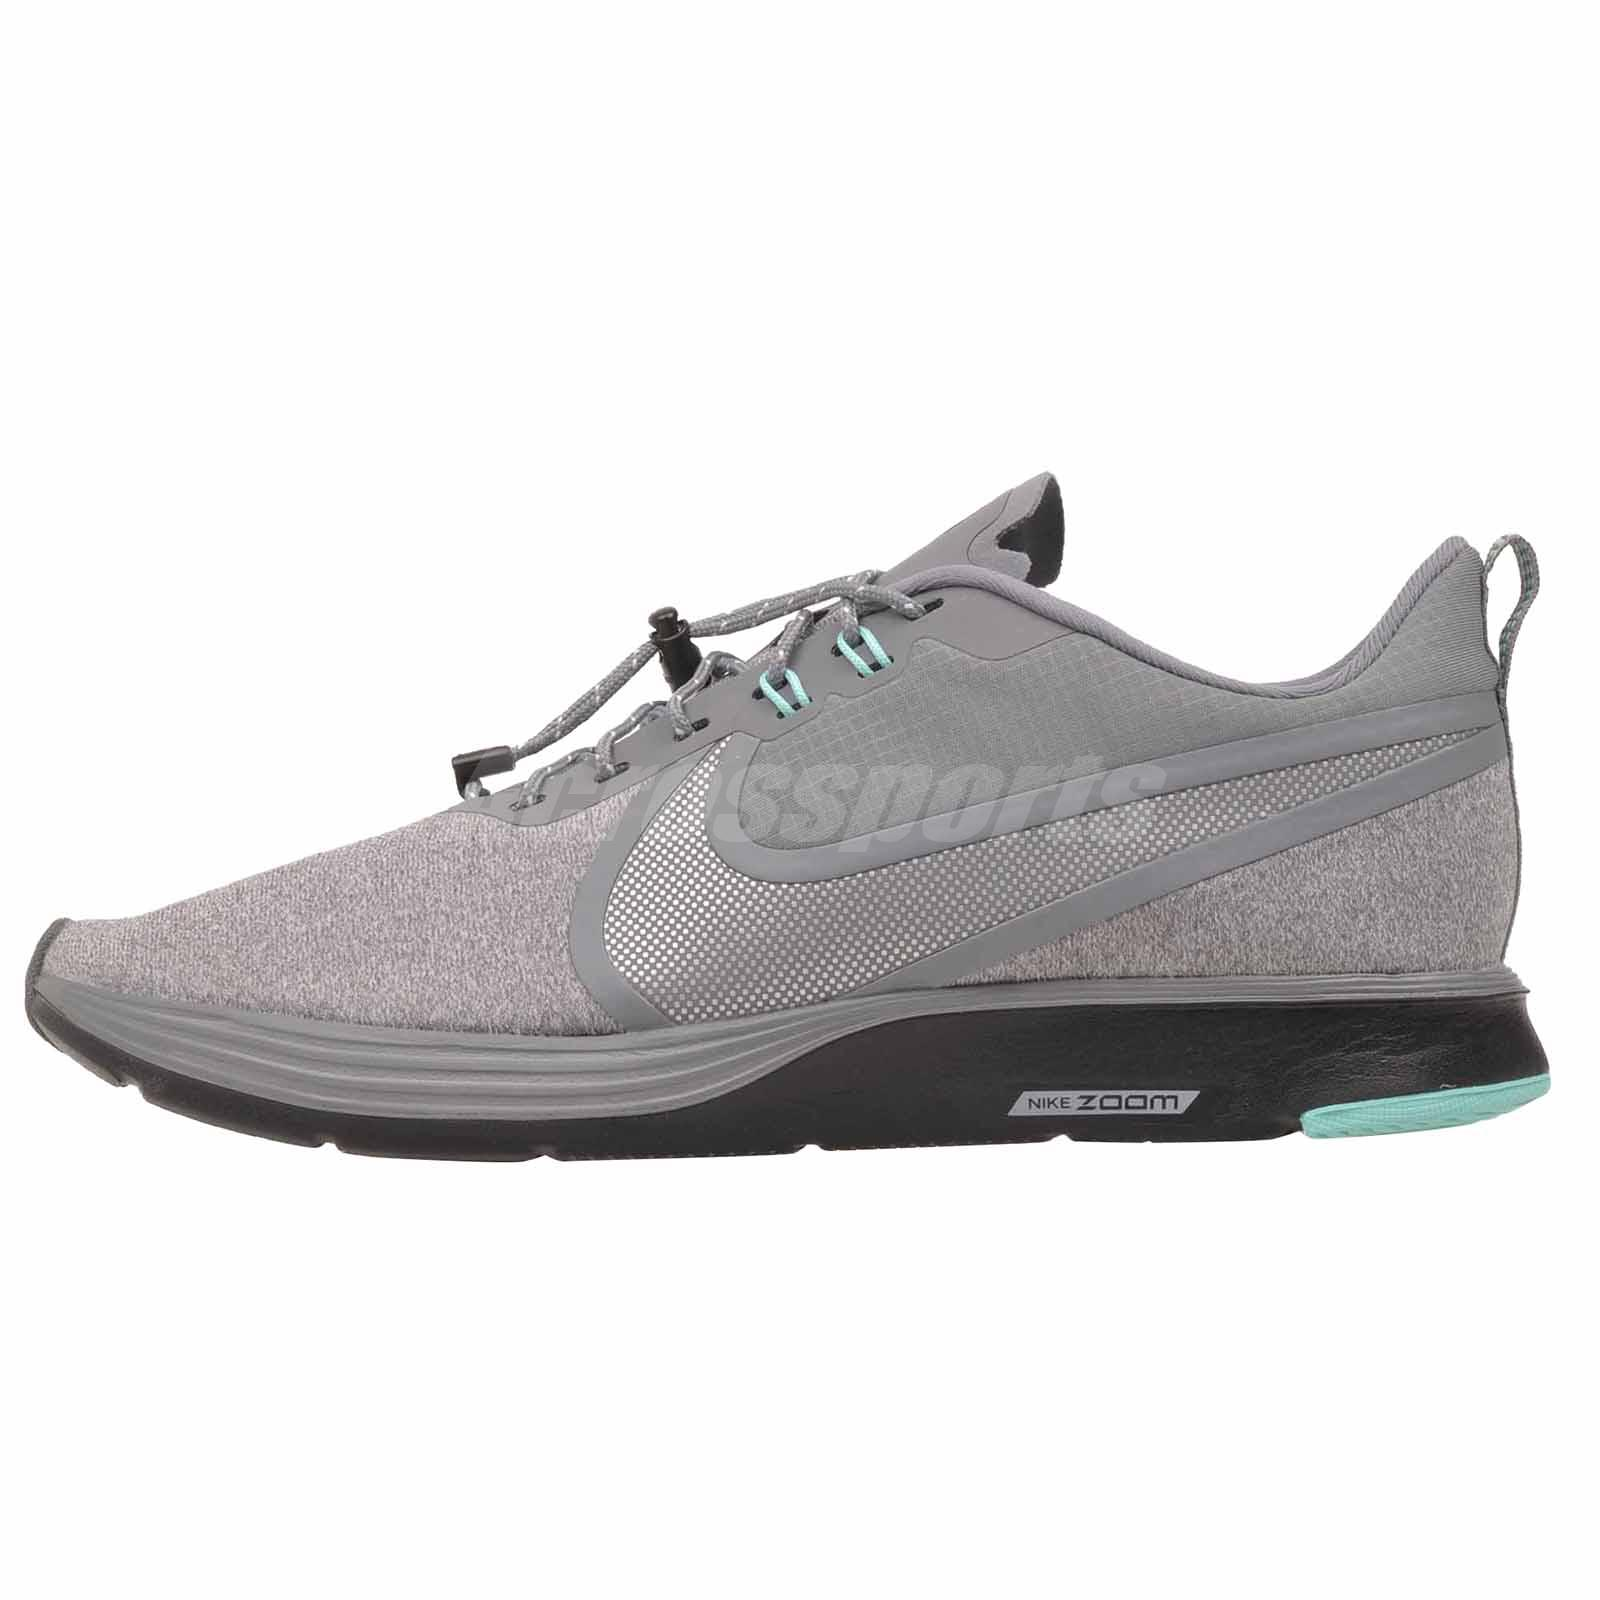 Details about Nike W Zoom Strike 2 Shield Running Womens Shoes NWOB AR9800 100